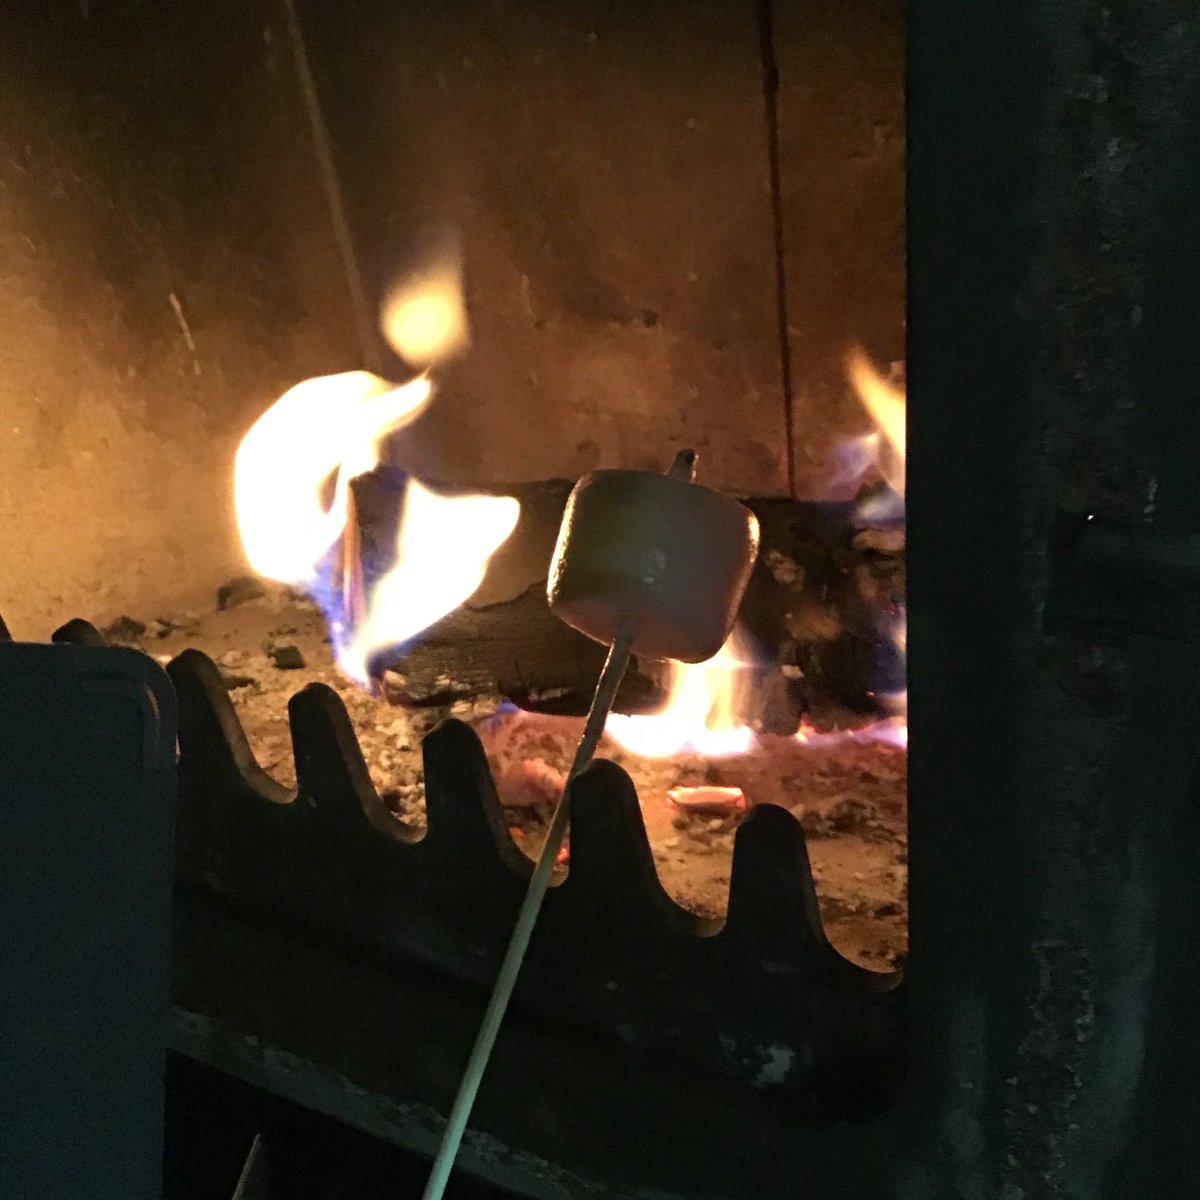 So long, heatwave!  A few days ago feeling cold was a distant memory, but now the lovely British weather arrives.  Bring on the #logfire and #smores! #NationalSmoresDay  #teacher5aday #ukheatwave #keepingwarm<br>http://pic.twitter.com/tYJEt1oJfy